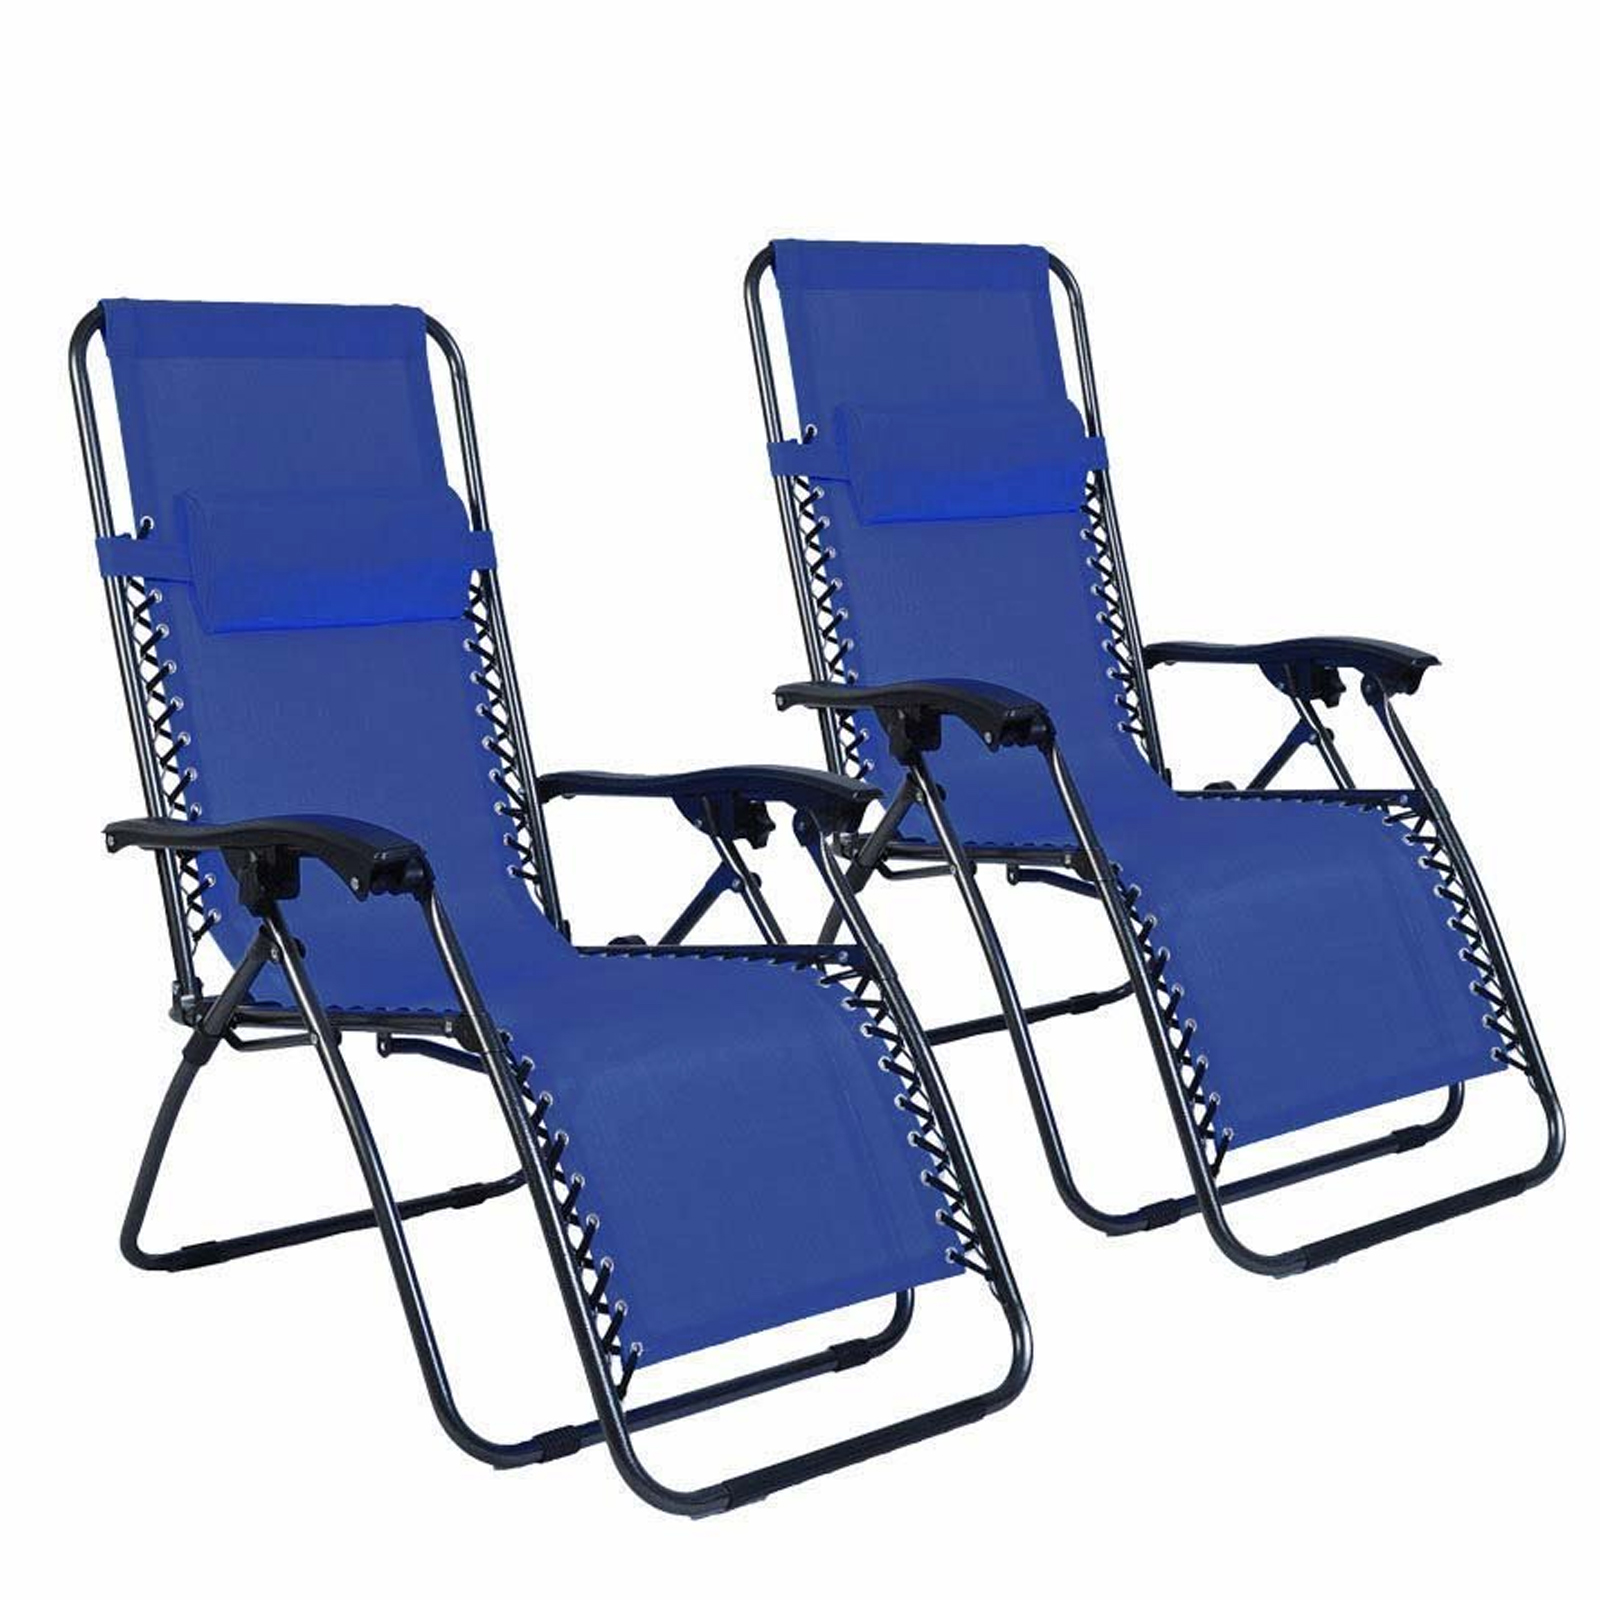 details about 2 zero gravity folding chair with cup tray recliner